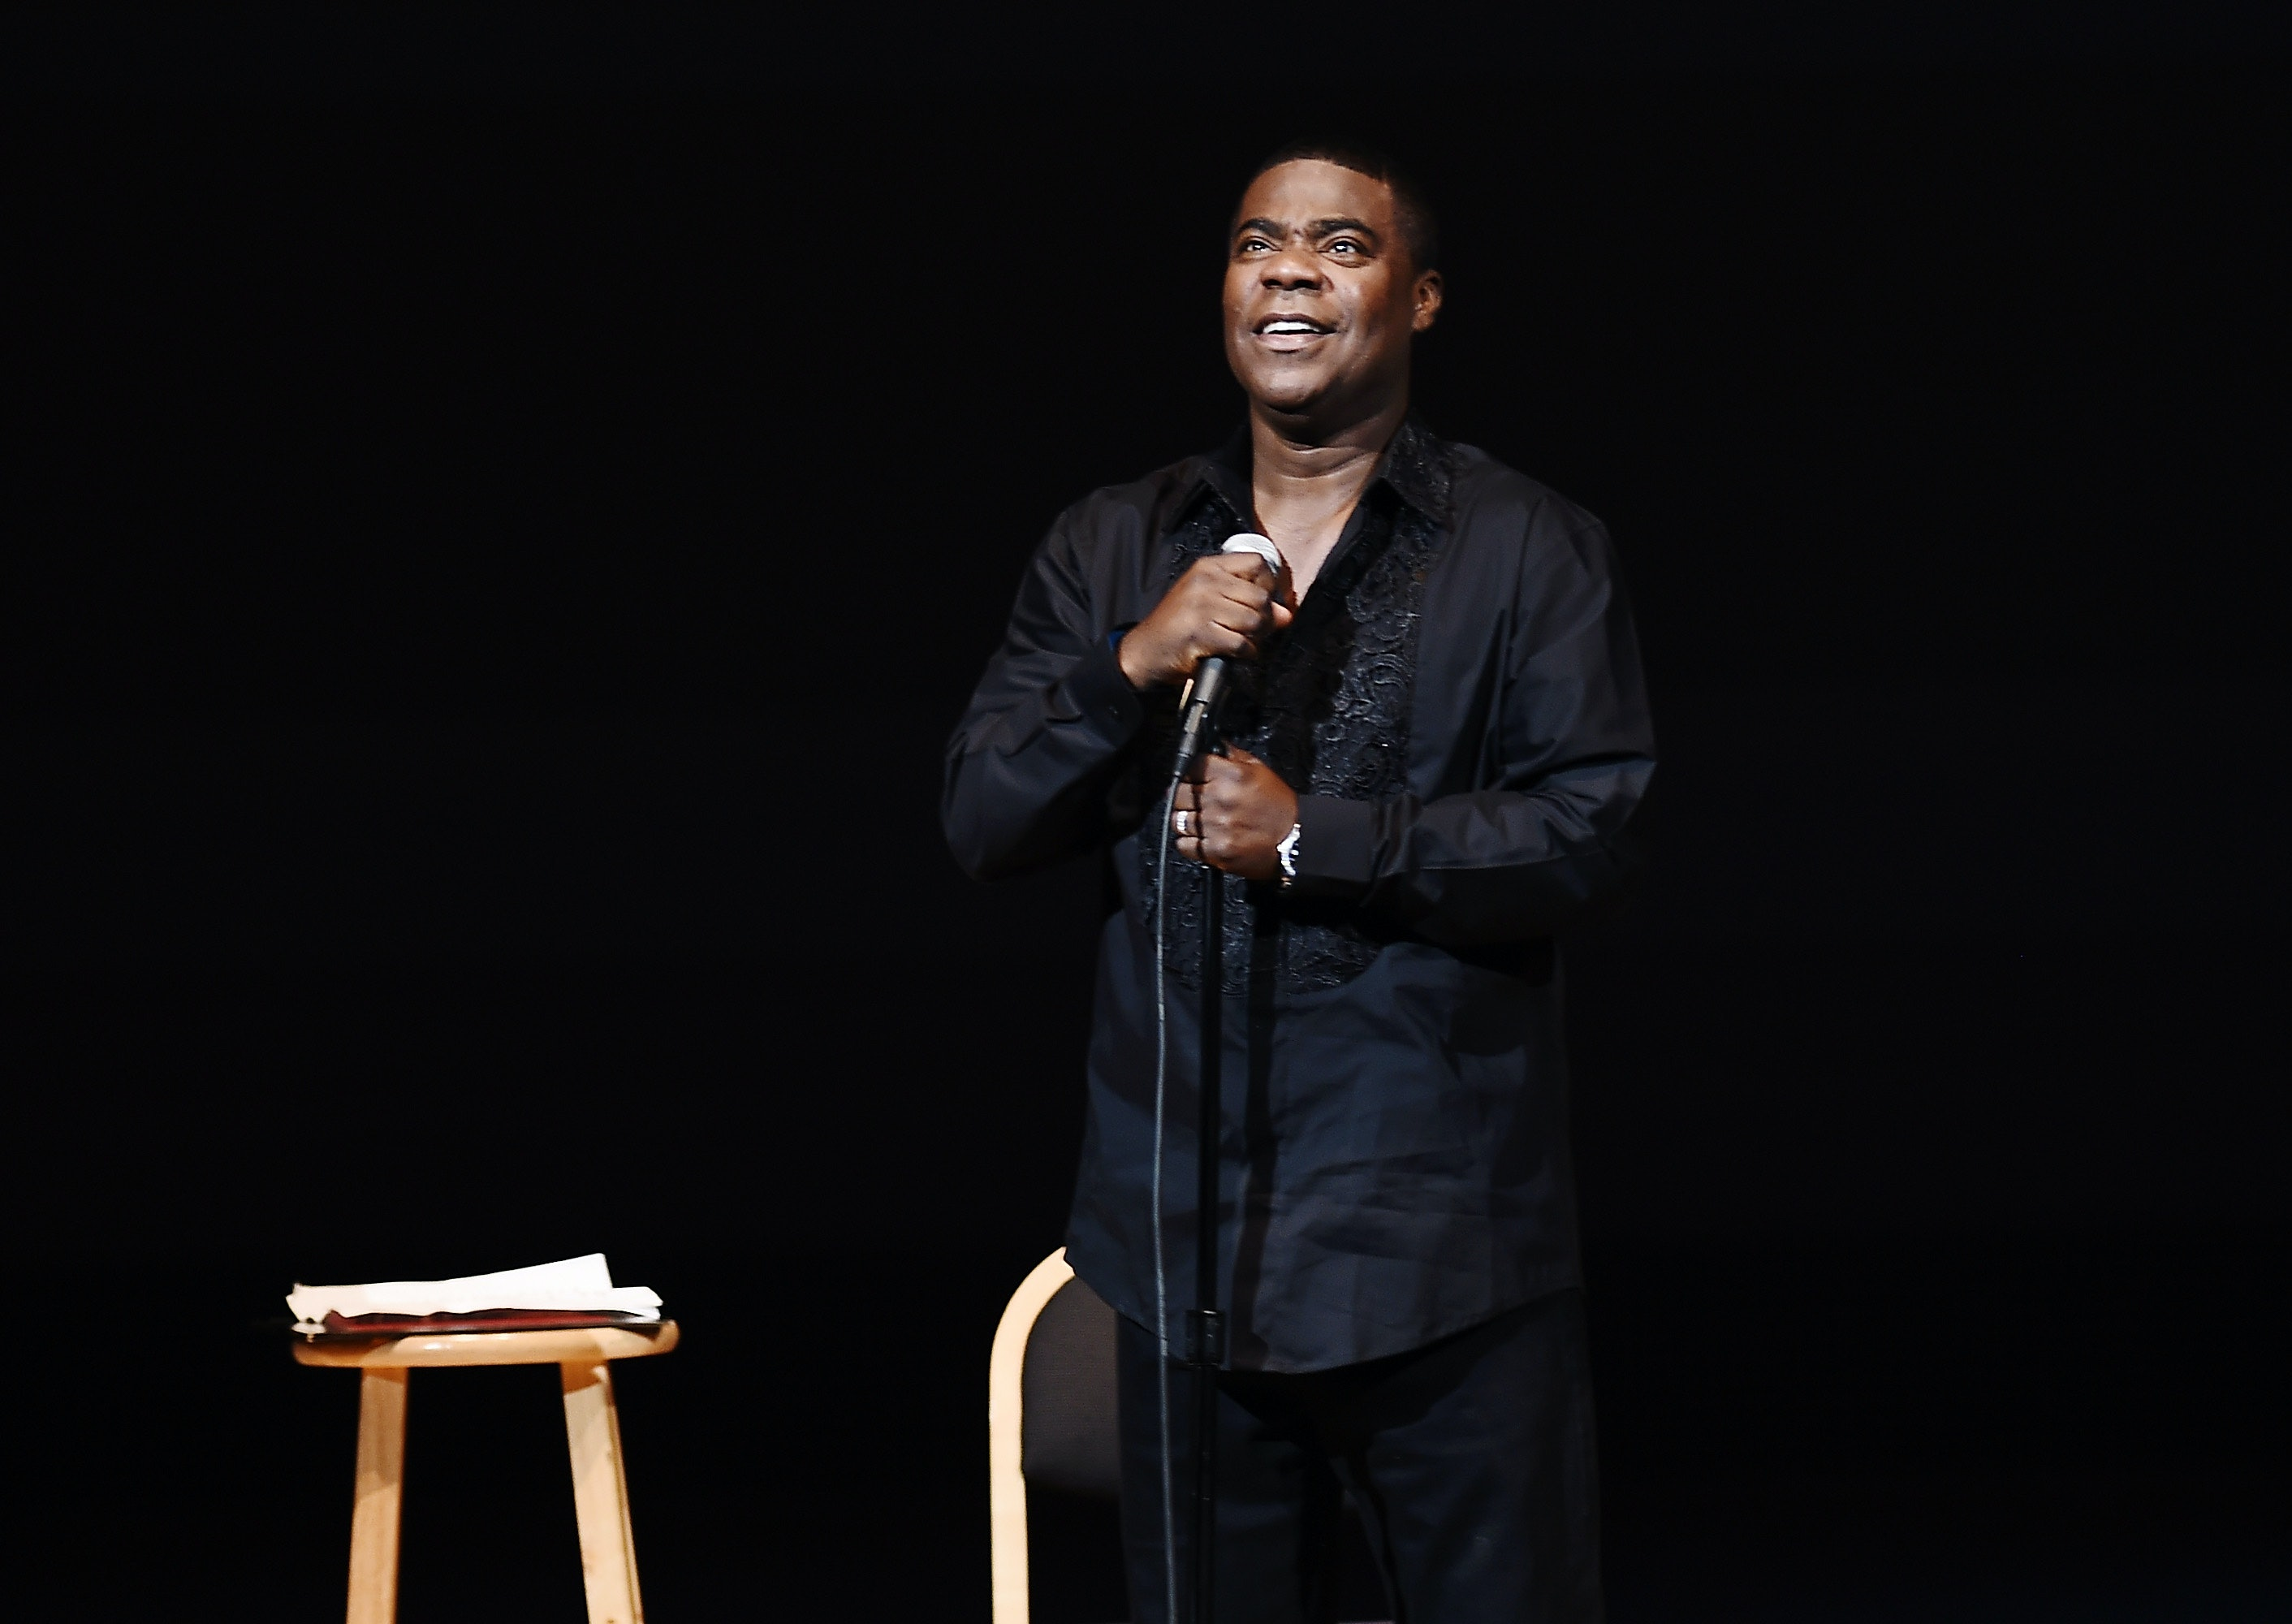 Tracy Morgan's Next Comedy Special Will Debut on Netflix